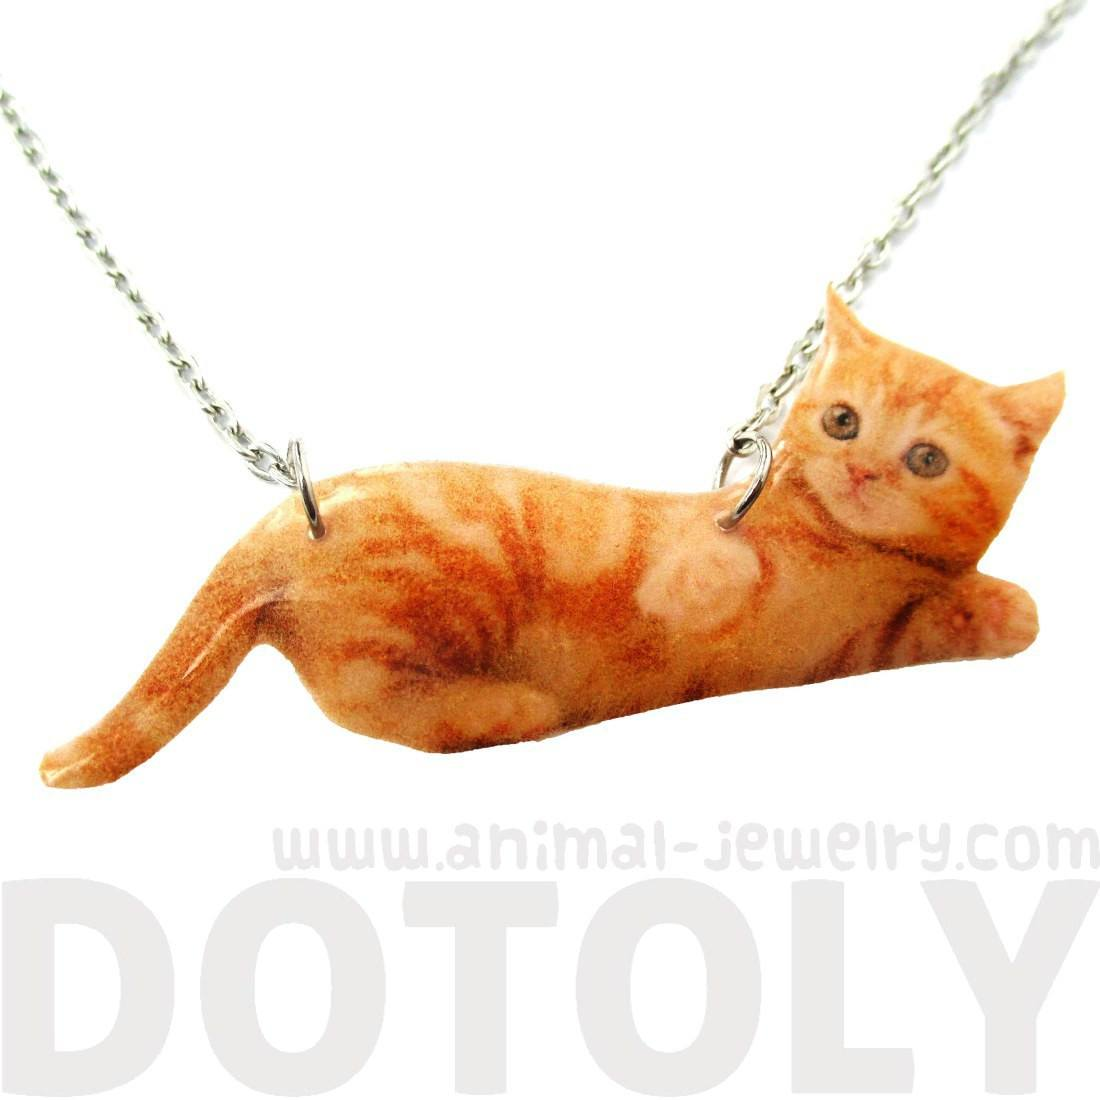 Realistic Baby Tabby Kitty Cat Shaped Pendant Necklace in Orange | Handmade | Animals in Awkward Poses